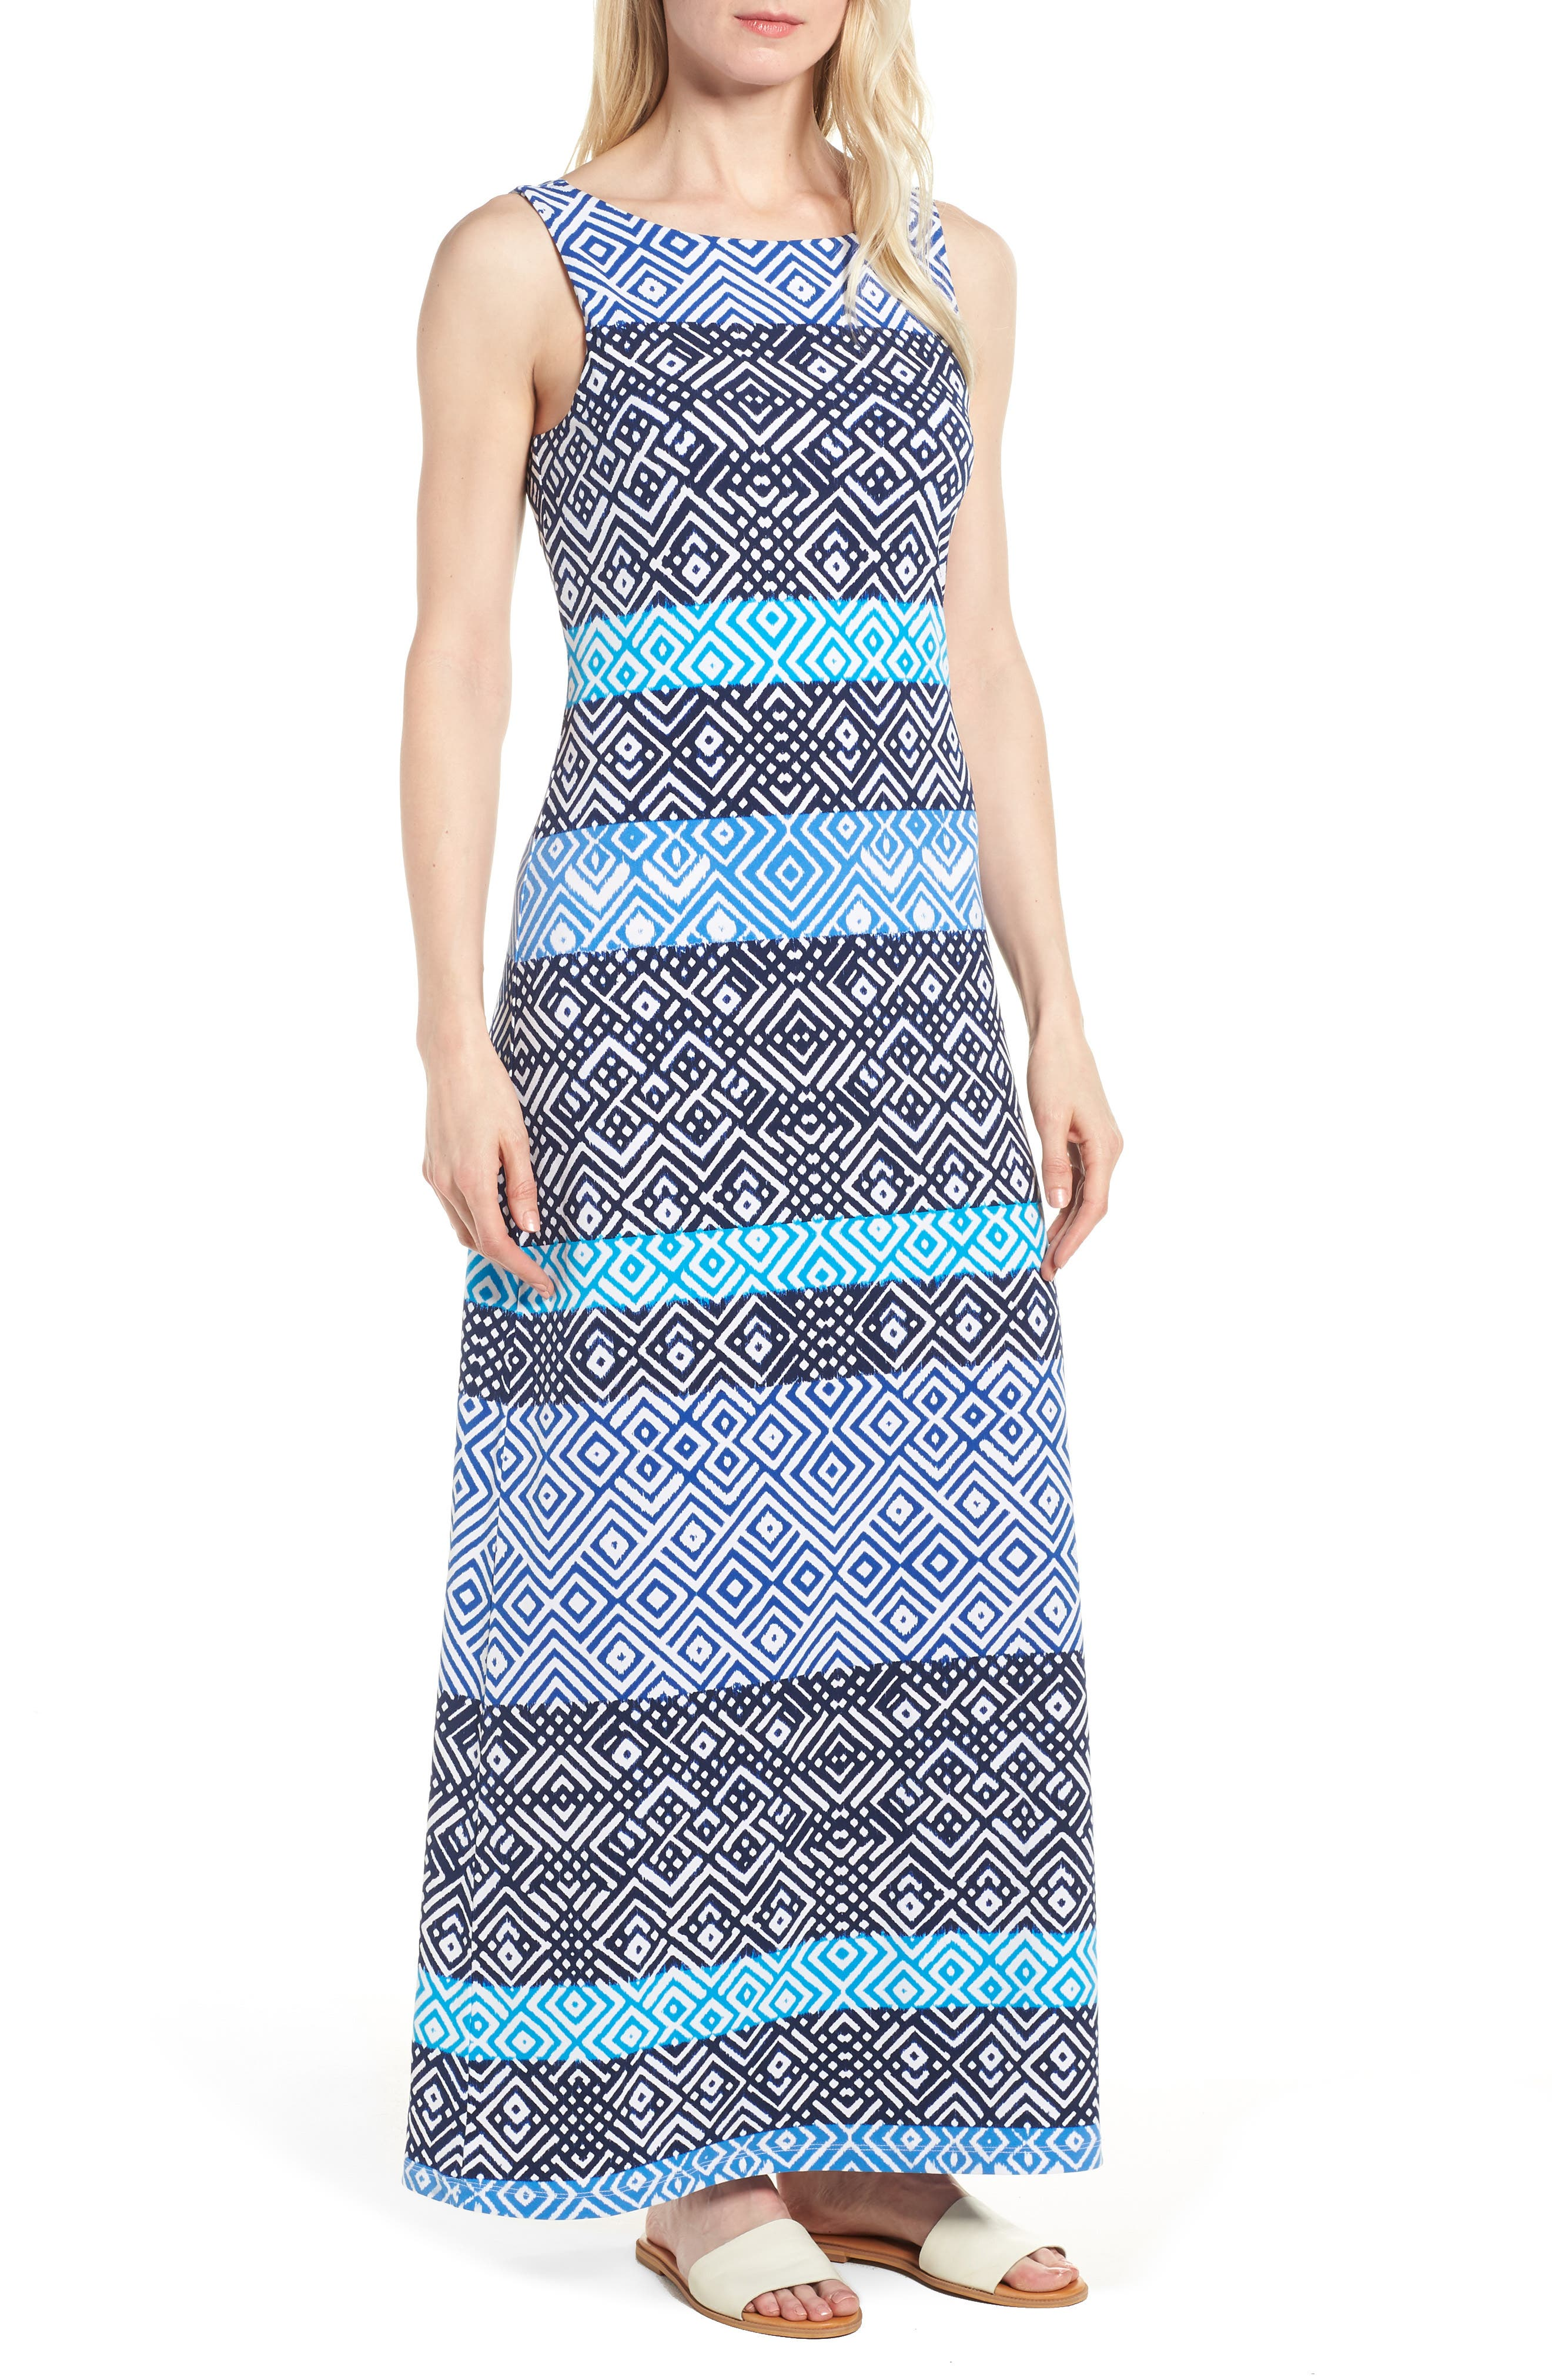 TOMMY BAHAMA Mayan Maze Maxi Dress, Main, color, OCEAN DEEP